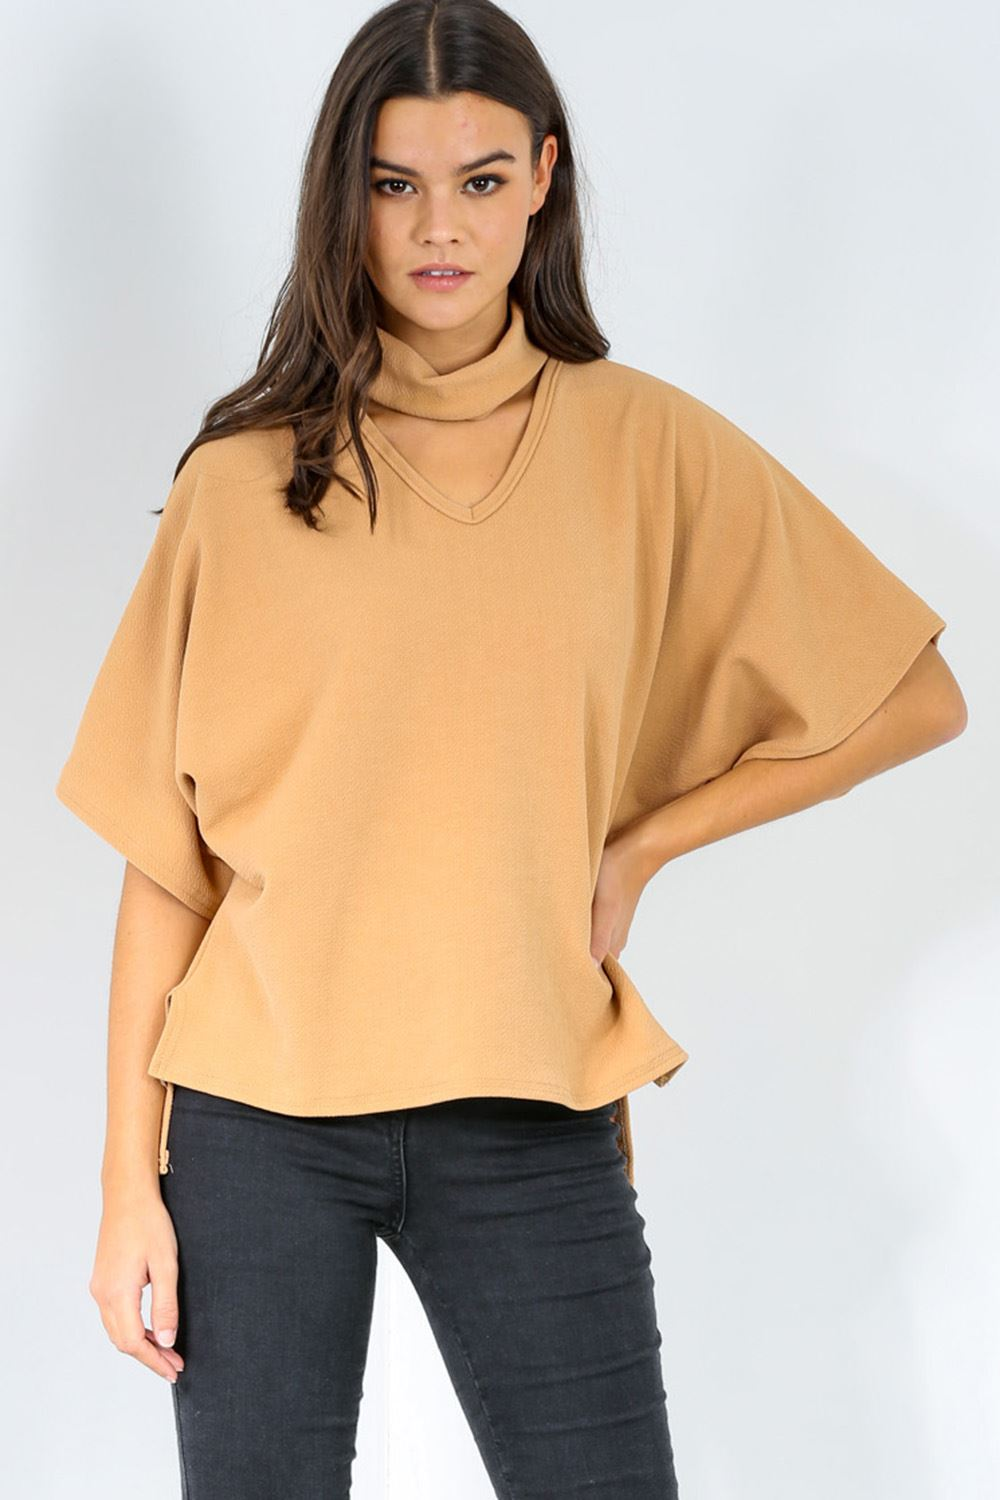 Womens ladies baggy oversized choker neck batwing high low for Low neck t shirts women s